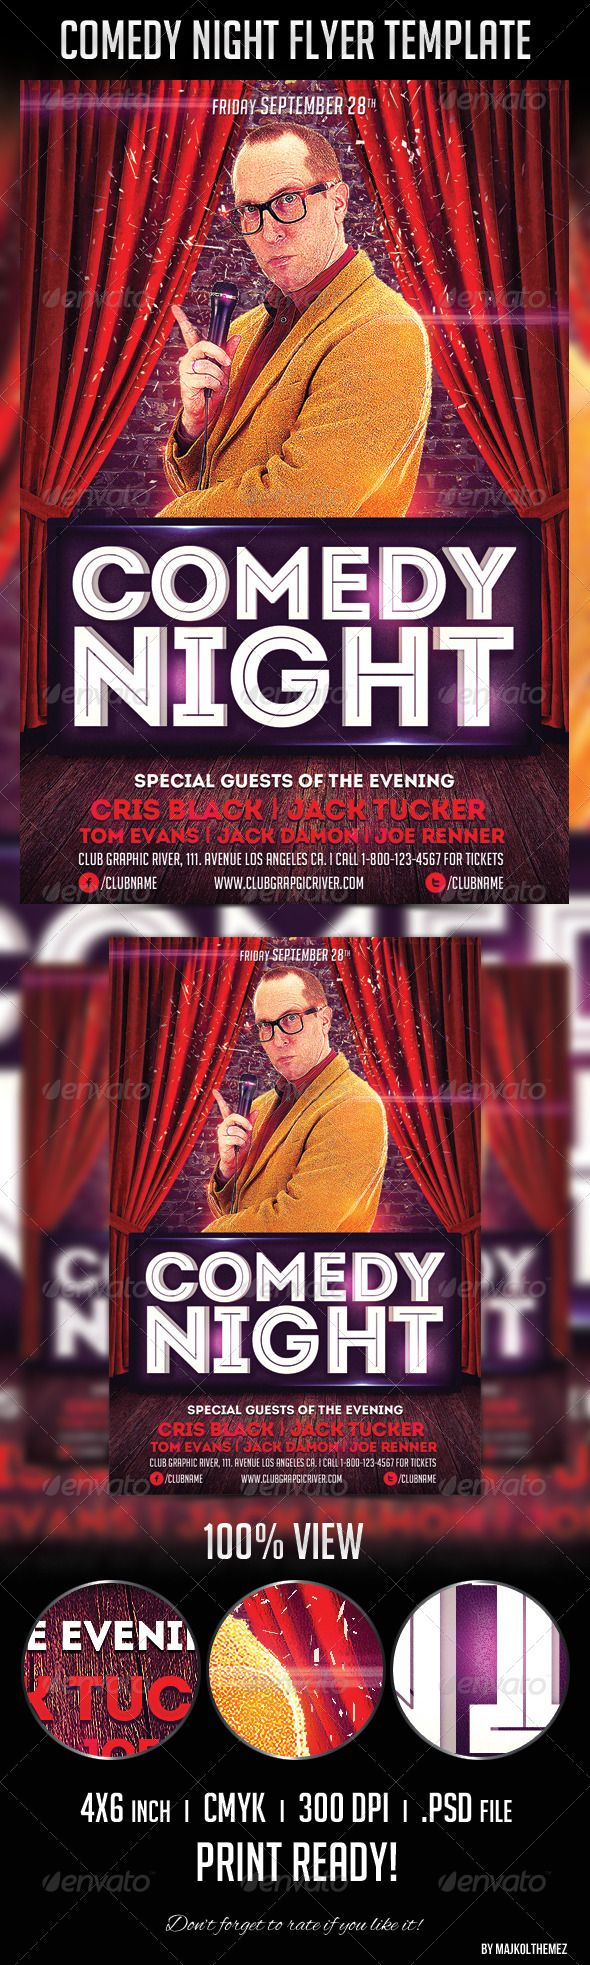 16 best images about Comedy Show Posters – Comedy Show Flyer Template